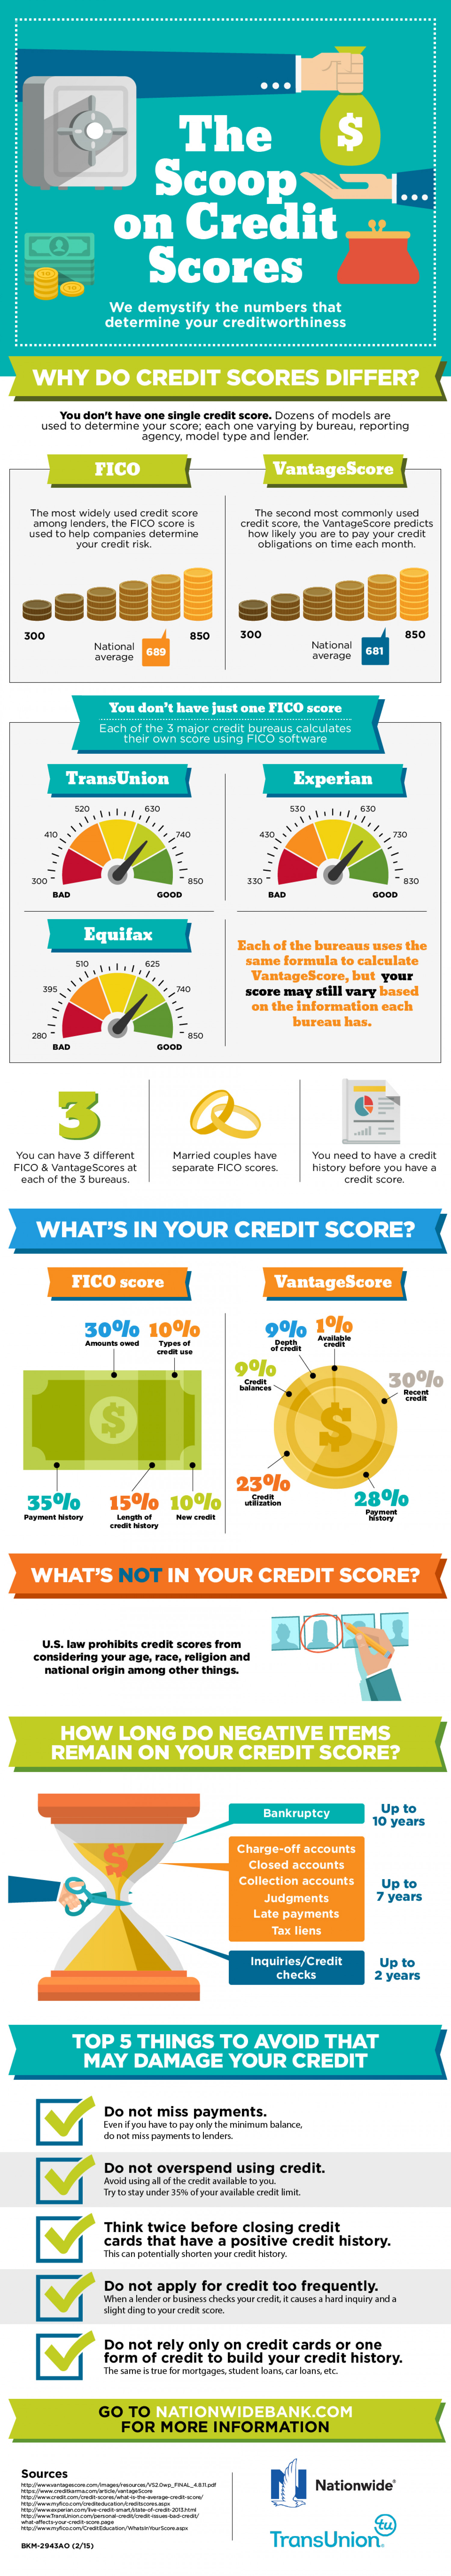 The Scoop on Credit Scores Infographic